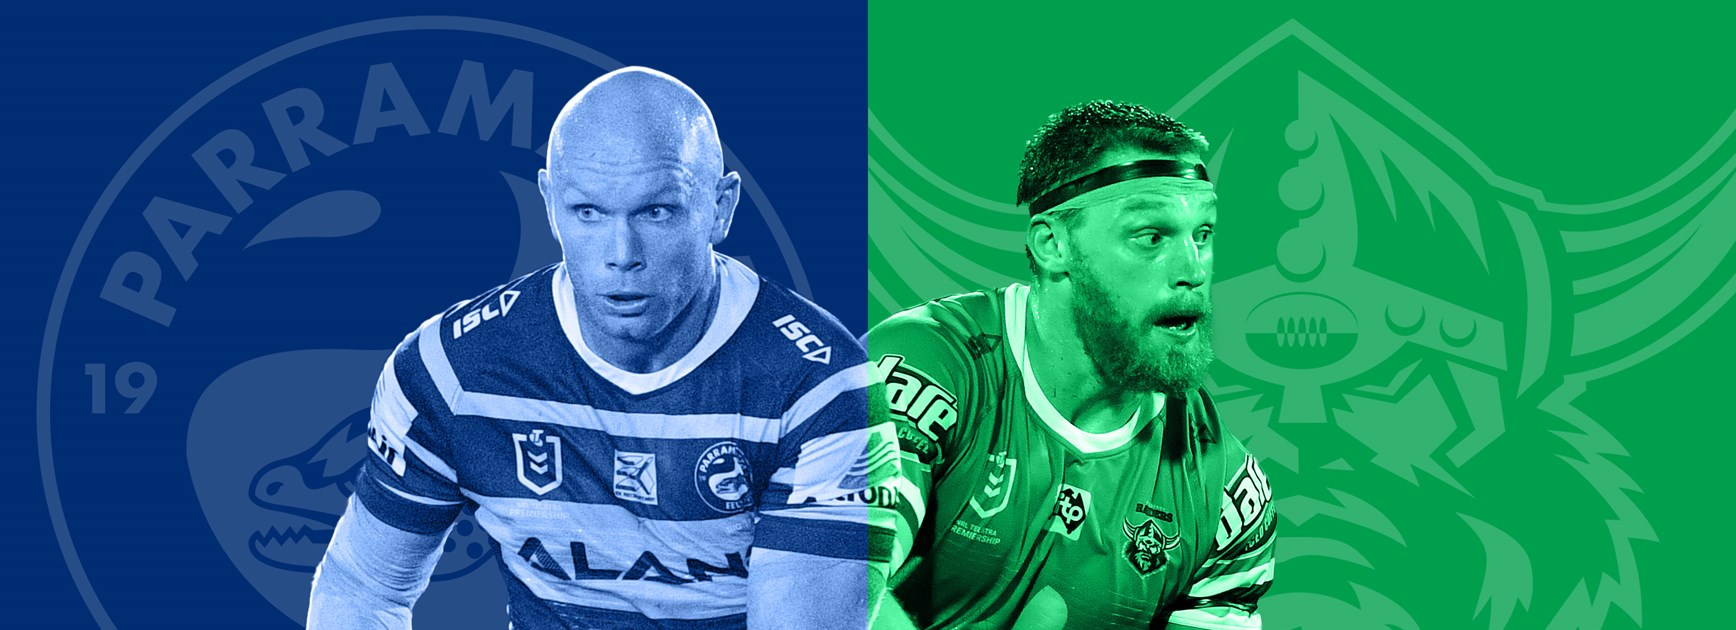 Match Preview: Eels v Raiders, Round 15, TIO Stadium